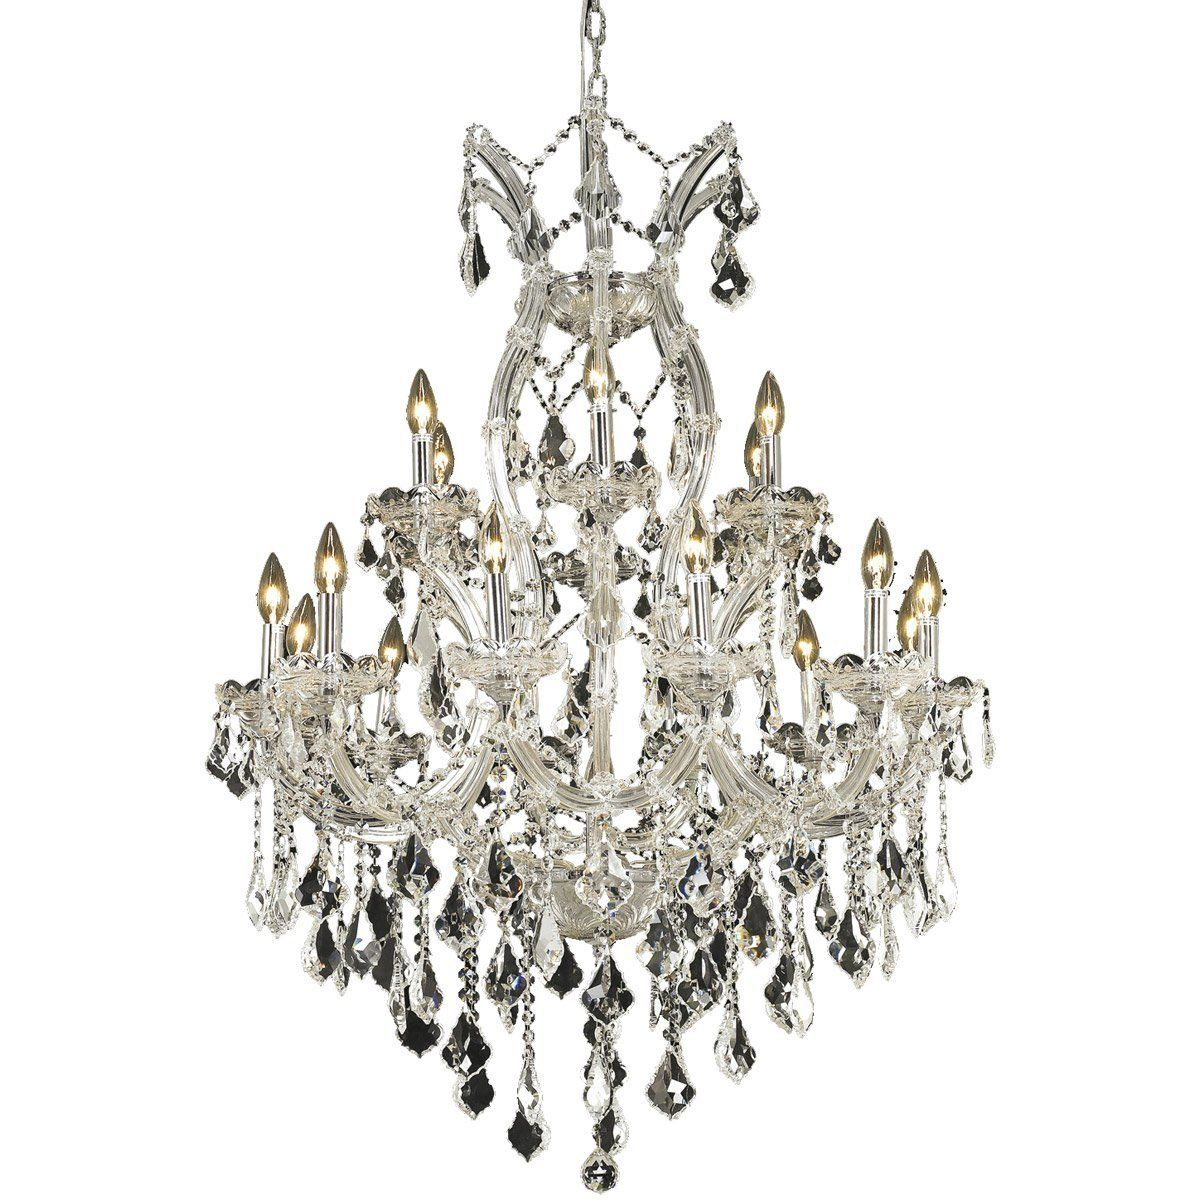 Maria theresa 32 crystal chandelier with 19 lights chrome finish maria theresa 32 maria theresa 32 crystal chandelier arubaitofo Gallery